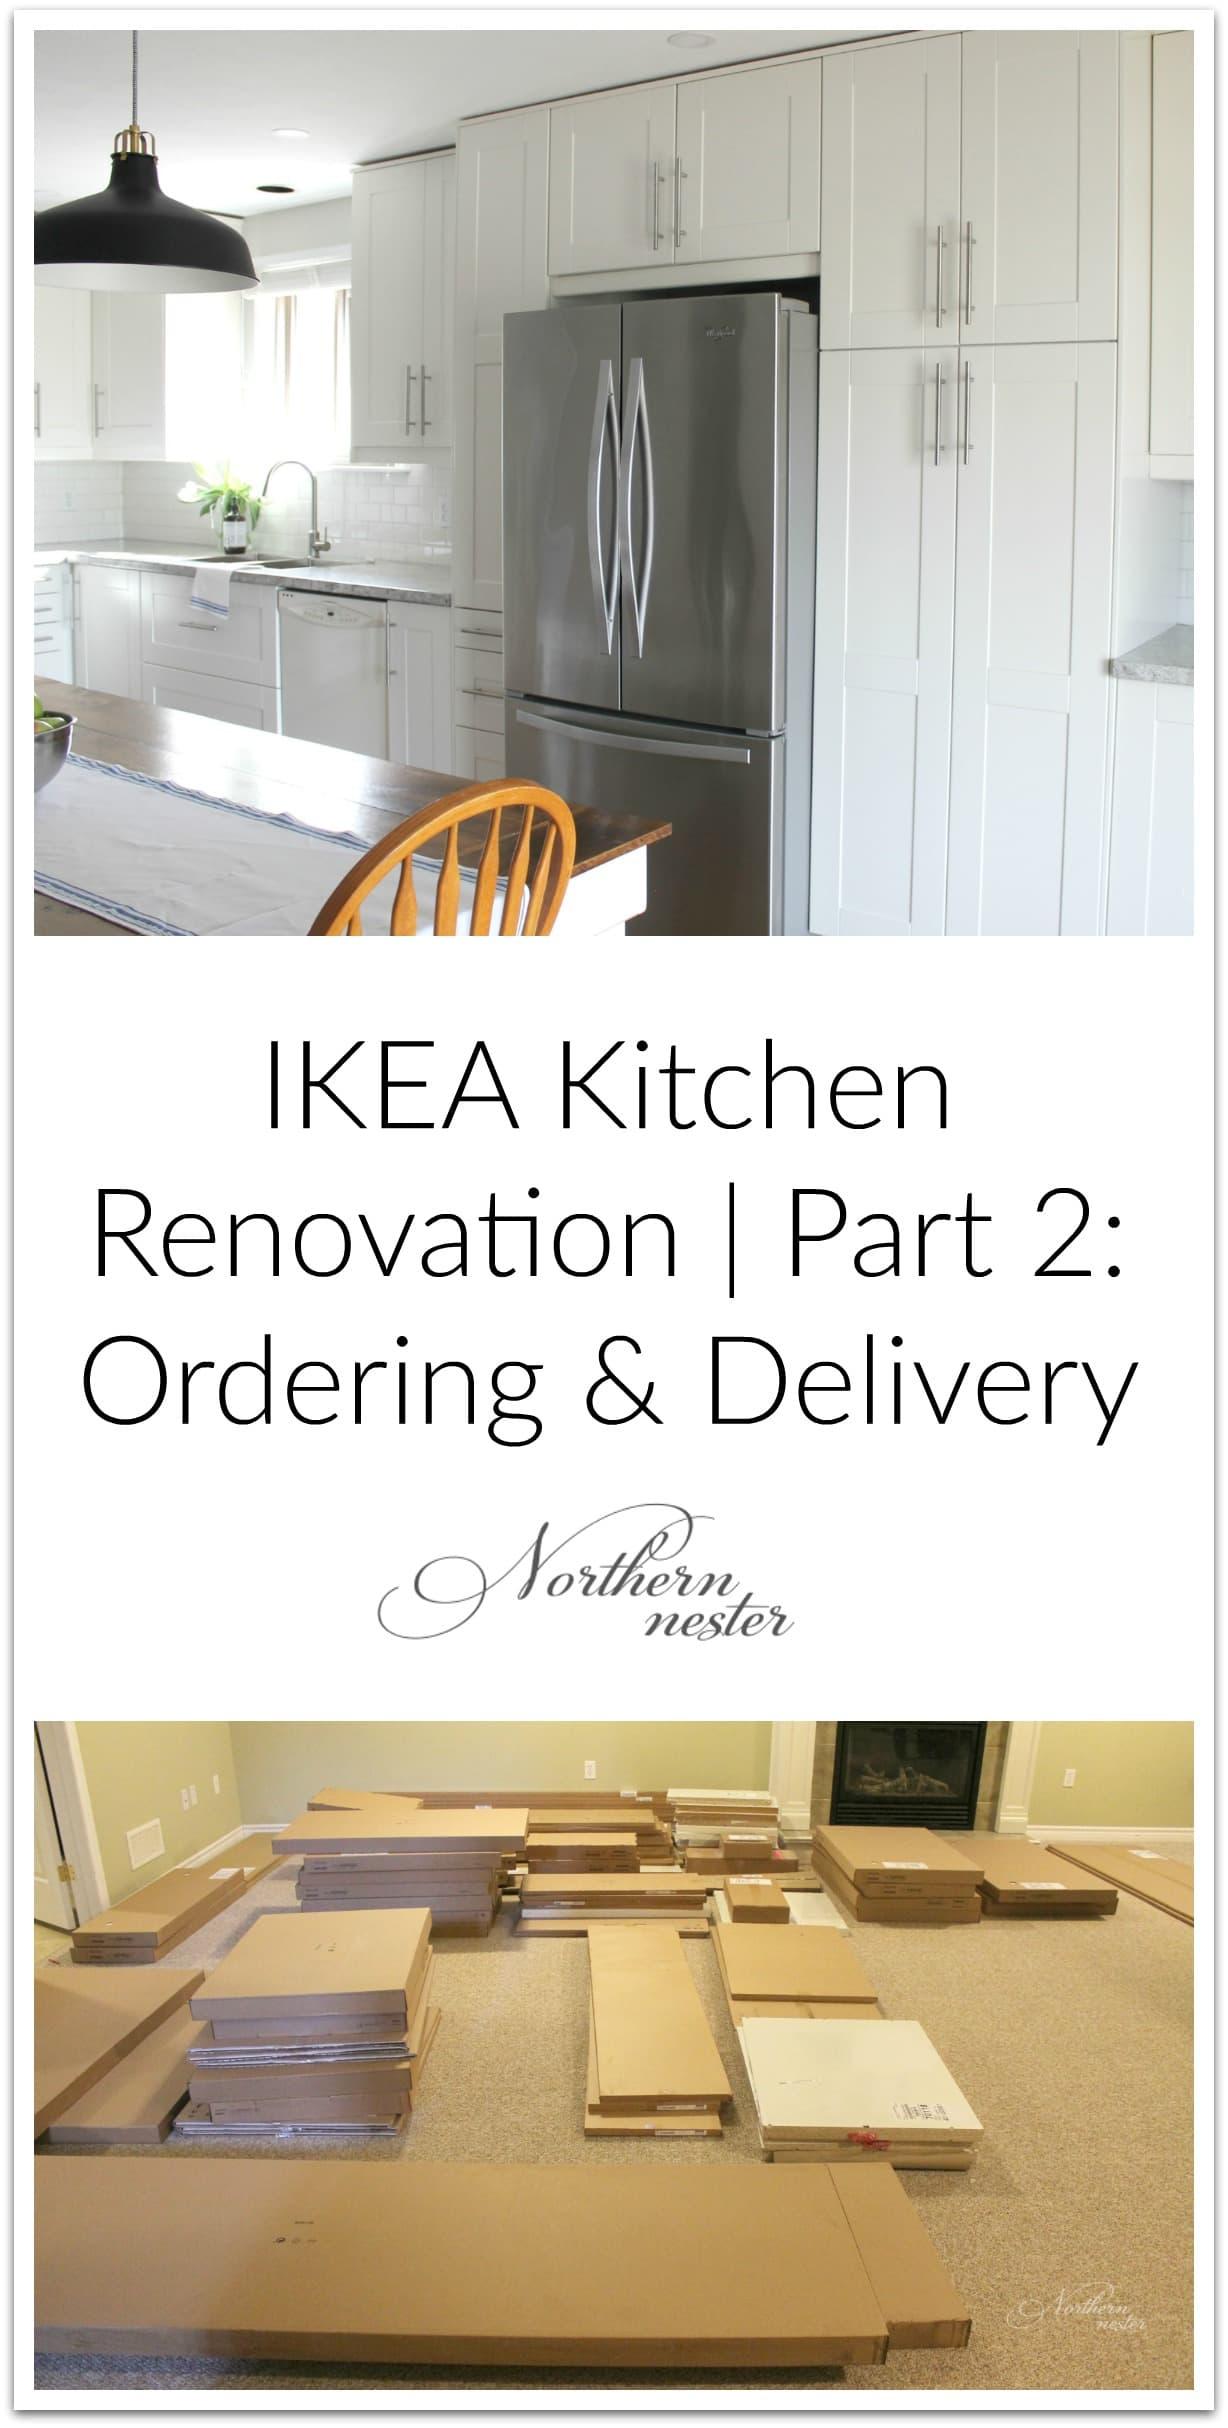 IKEA Kitchen Renovation | Part 2: Ordering & Delivery - Northern Nester